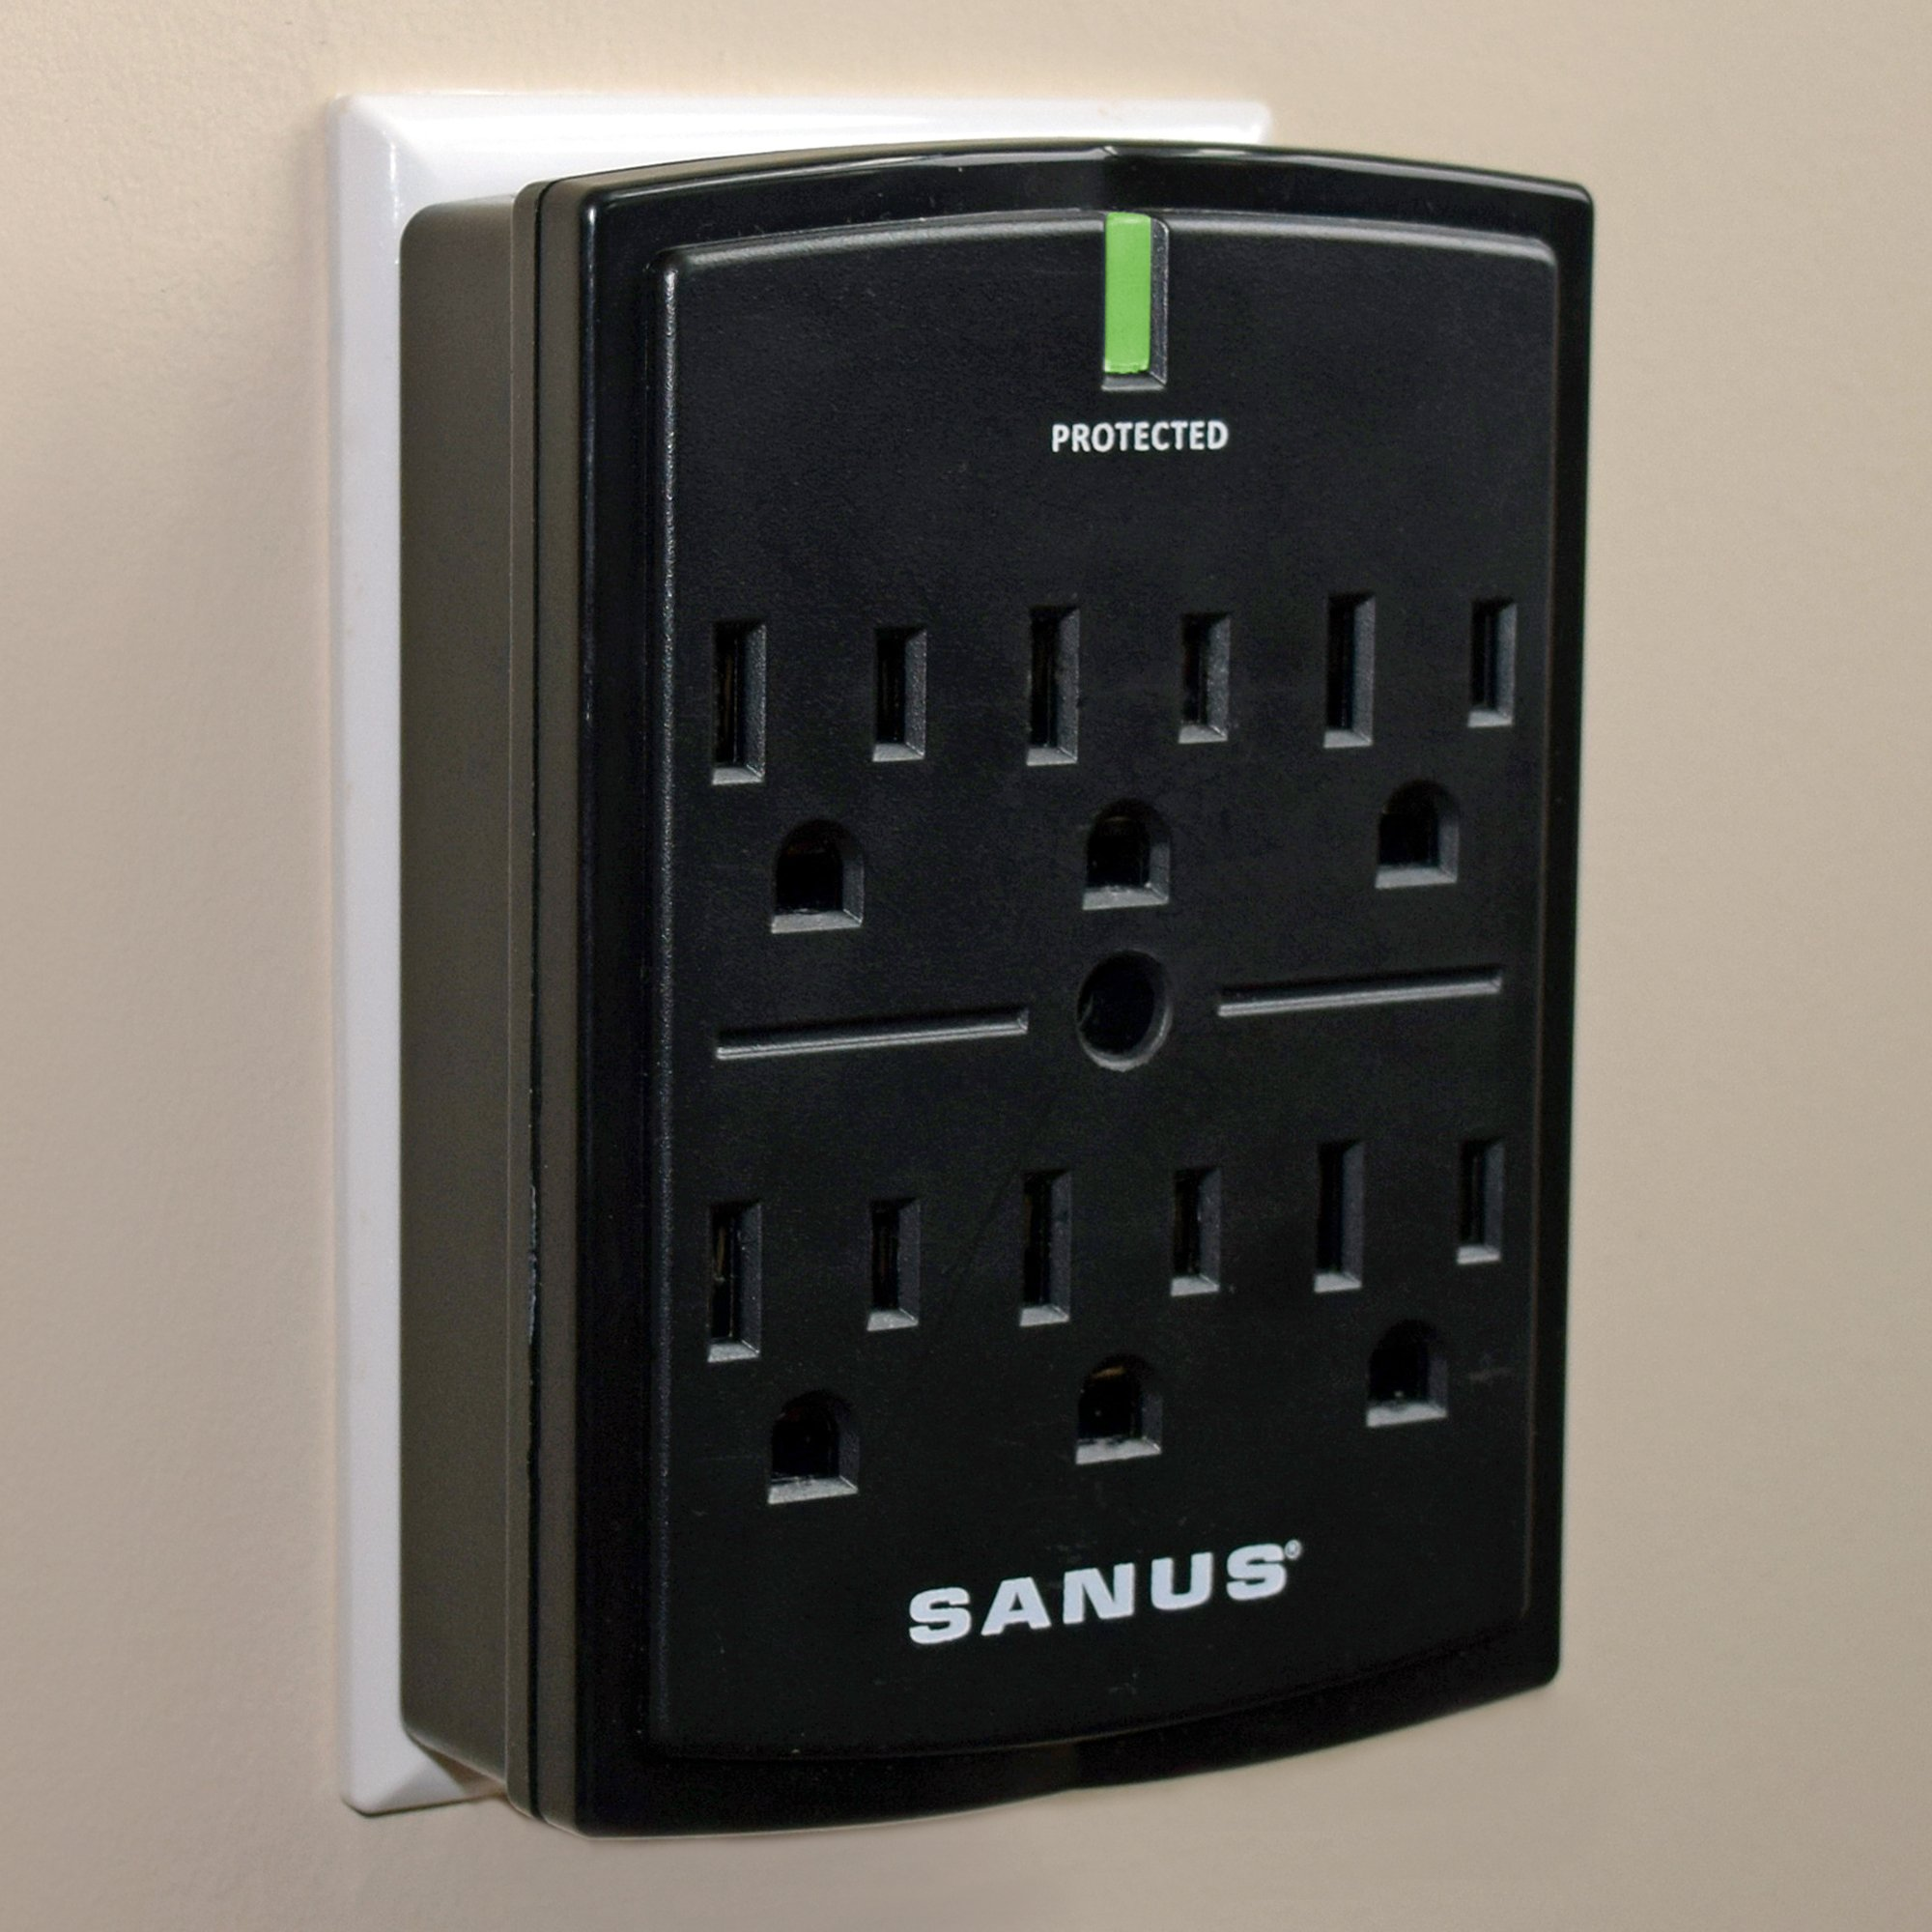 SANUS On-Wall Low Profile 1080J Fireproof Surge Protector With 6 AC Outlets & 3 Lines Of Protection - Includes Power Signal Filtering & Mounting Screw